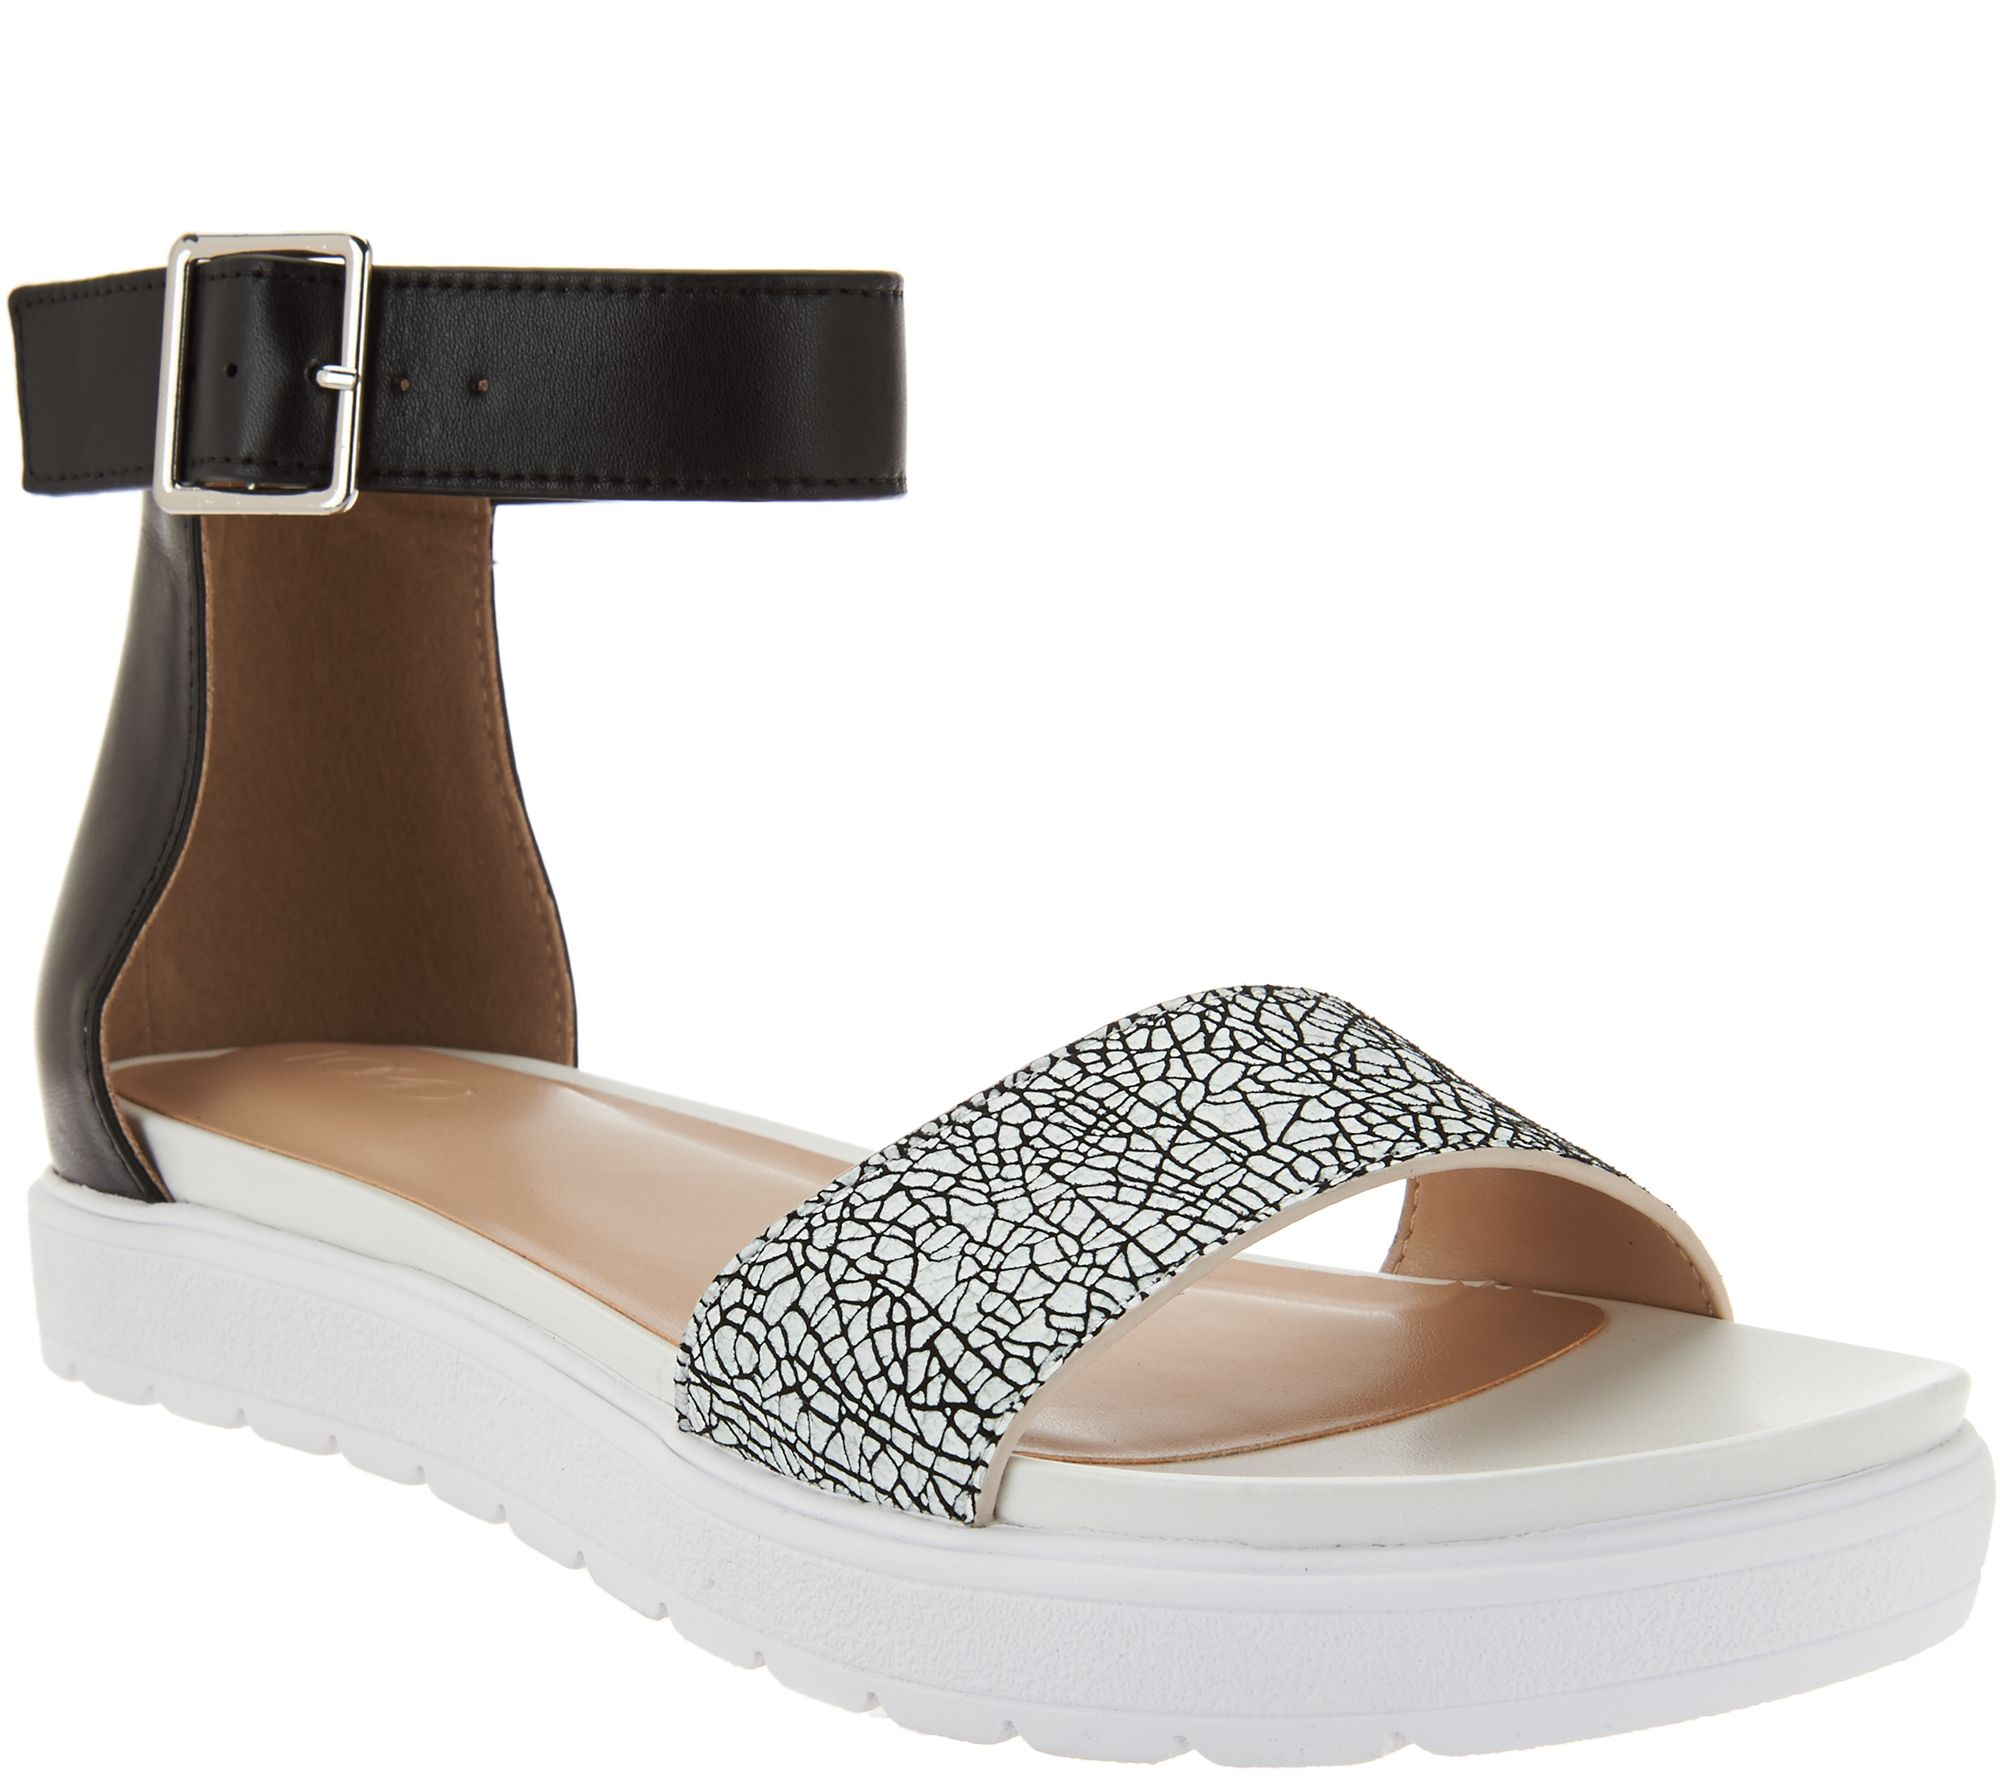 LOGO by Lori Goldstein Leather Crossover Strap Sandals buy cheap official sEeecKlk